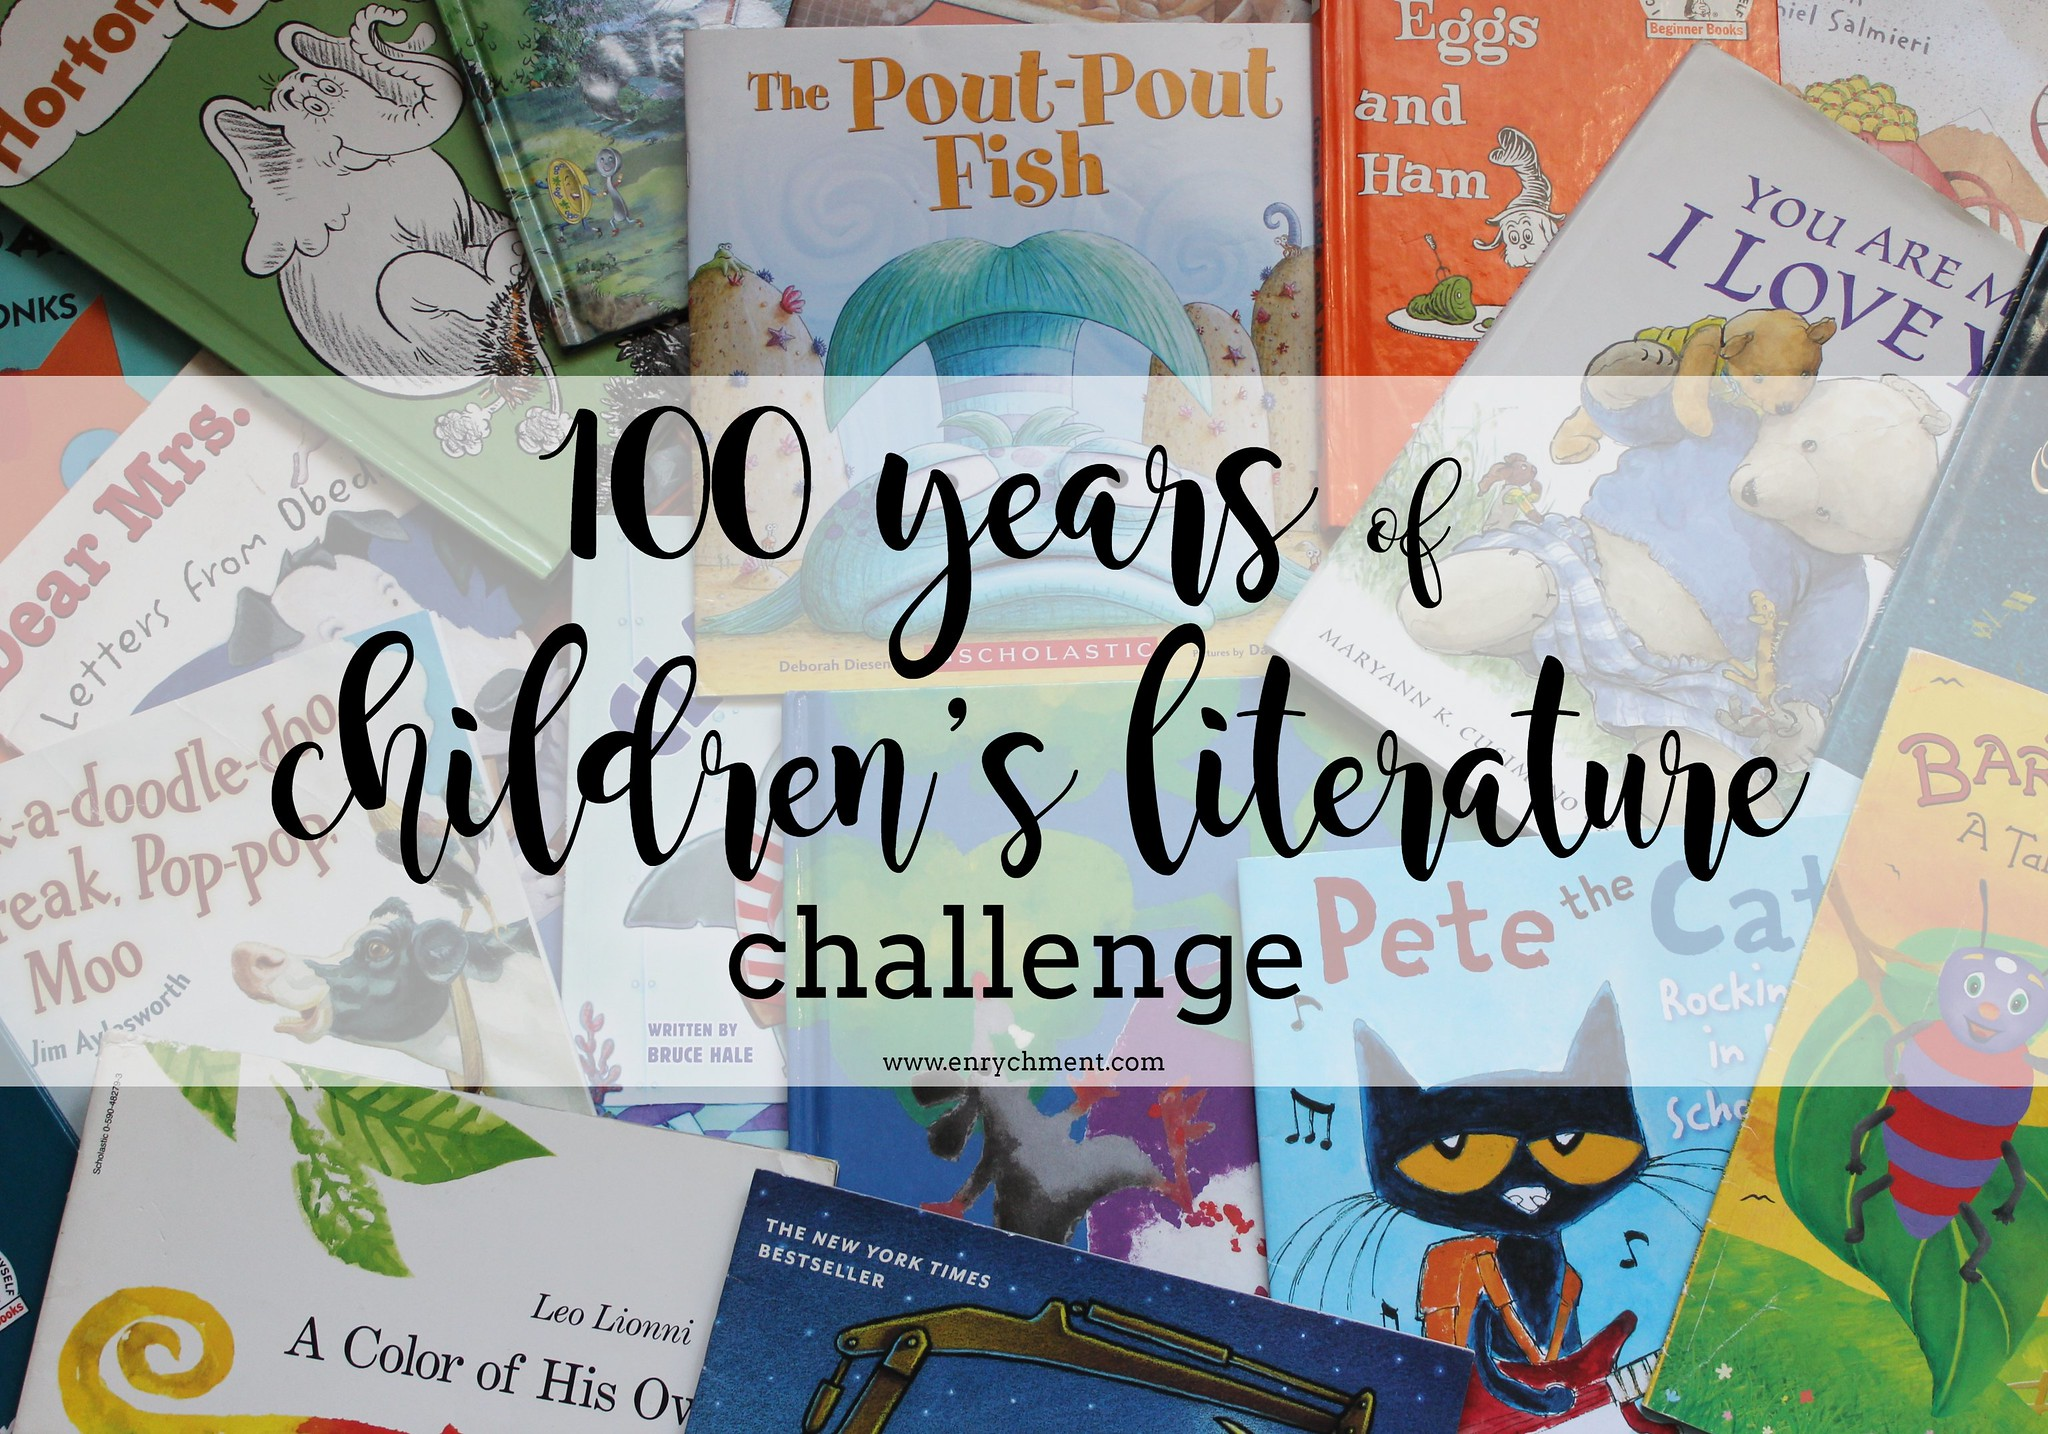 100 of Childrens Literature Challenge! Read one book from each year of publication starting with 1919 | www.enrychment.com